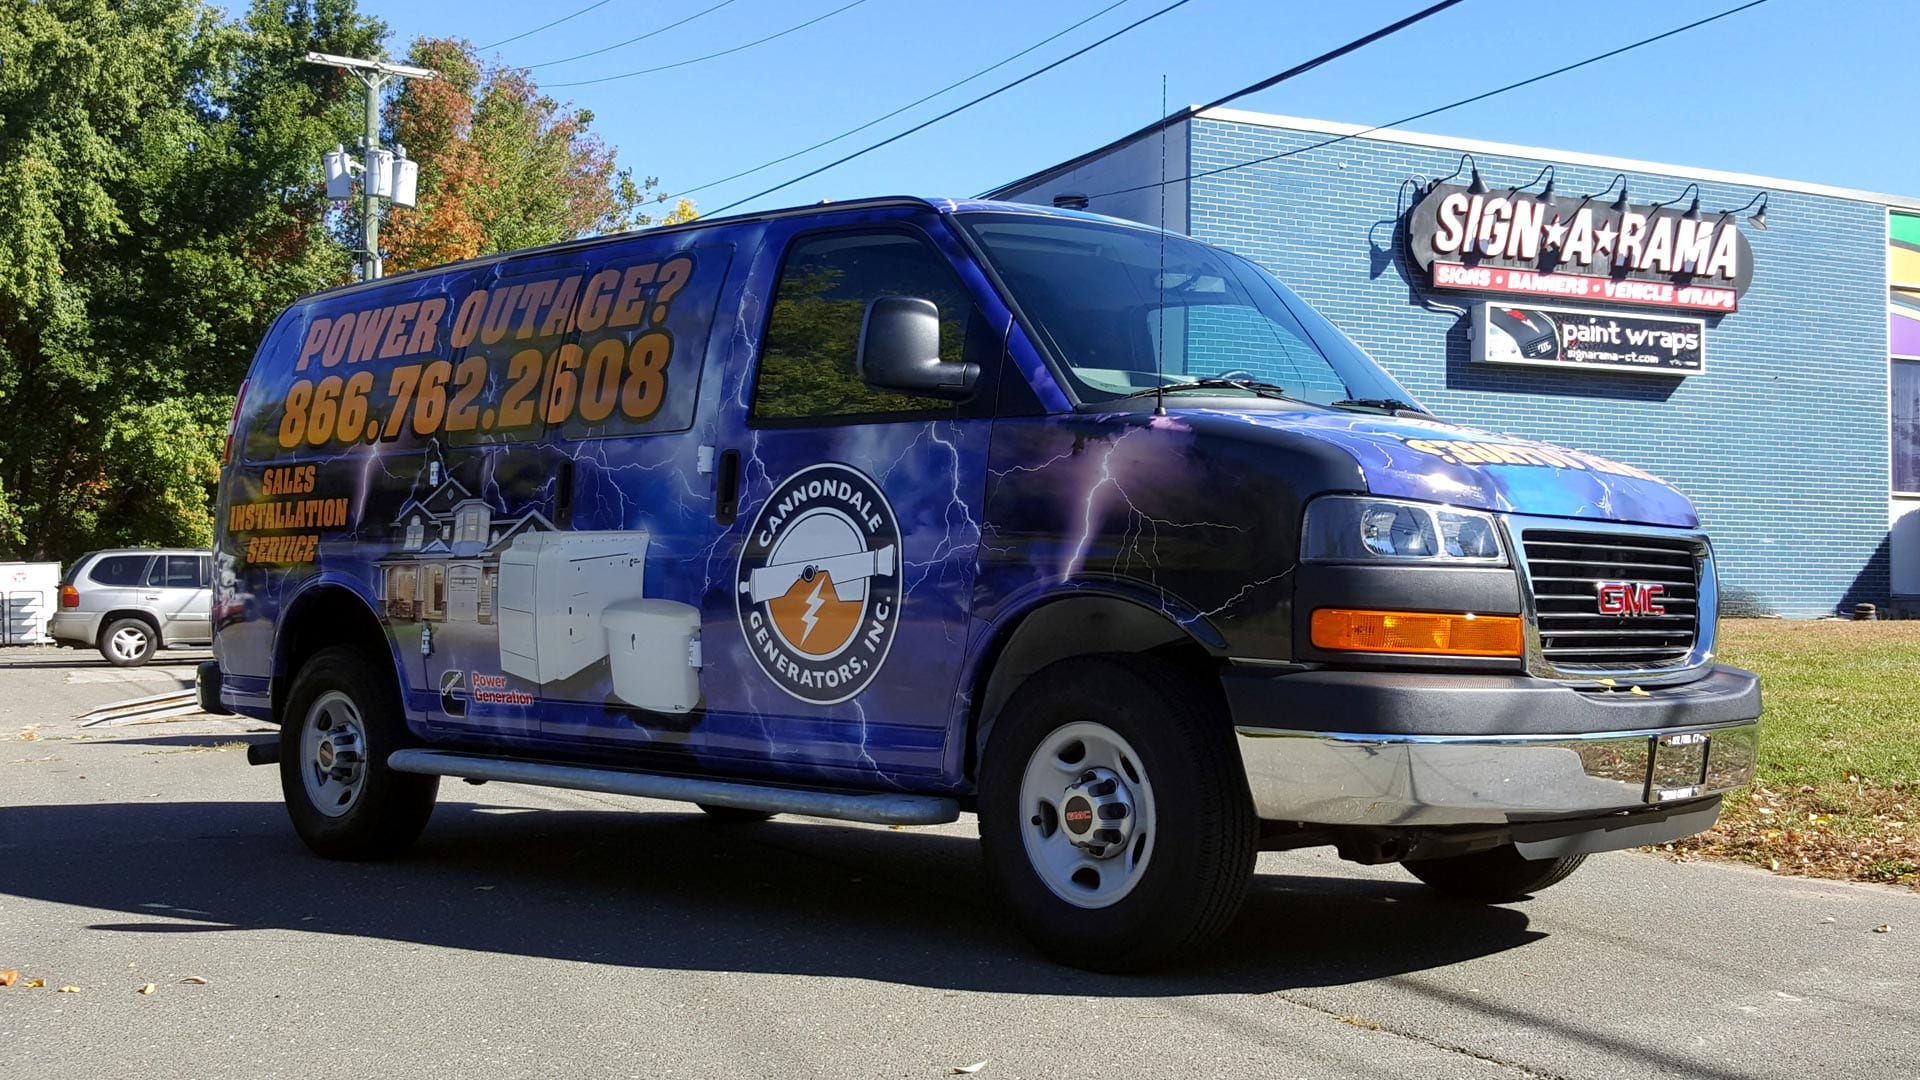 Full car wrap on a company van